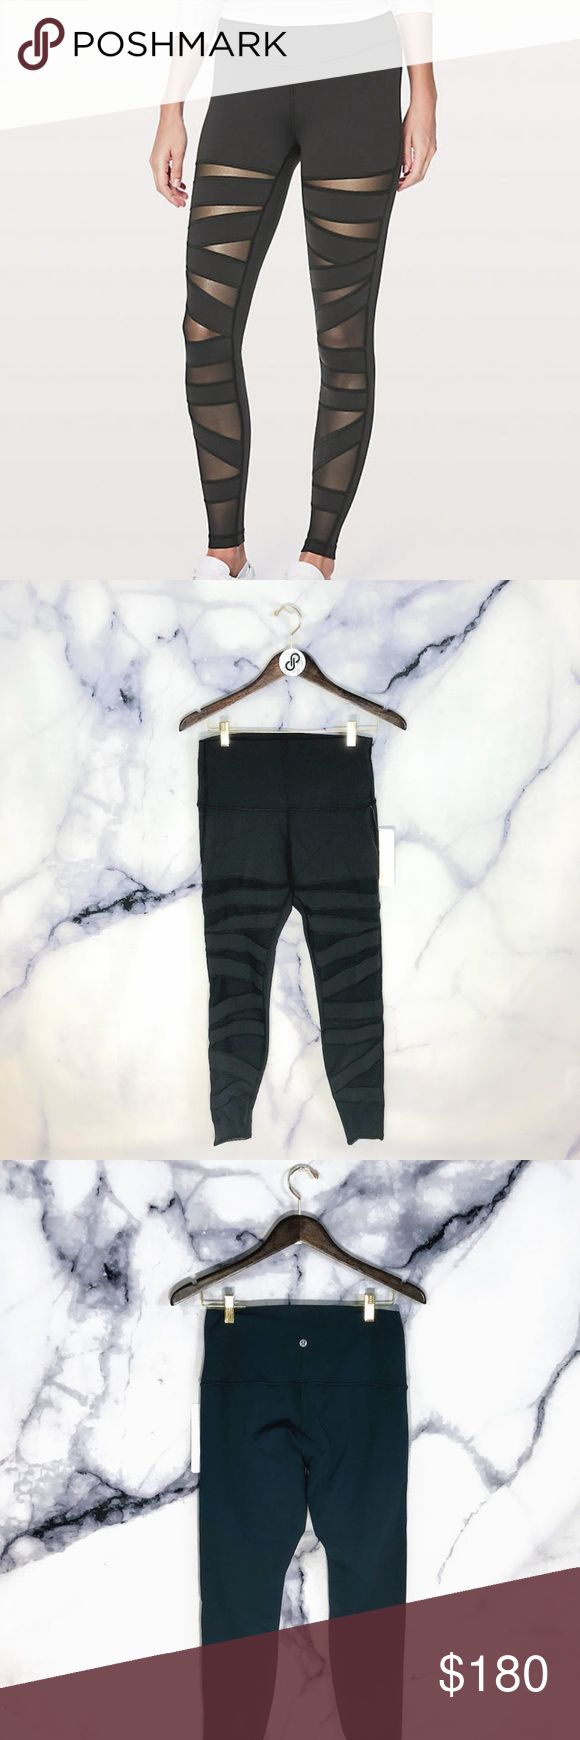 """Wunder Under Pant (Hi-Rise) Tech Mesh 31"""" BLACK Wunder Under Pant HRSE MESH Special Edition 31""""  Hard to find these babies in stock in THIS color and THIS size for long!   Measures 28"""" waist unstretched, 12"""" rise, 31"""" Inseam  If you like it, send me an offer! Too shy to offer? Add it to bundle and I'll send you my best price! Want to buy it full price? Comment """"SOLD"""" and add to bundle to receive free or discounted shipping.   Thanks for stopping! Come back soon as I add new items regularly…"""